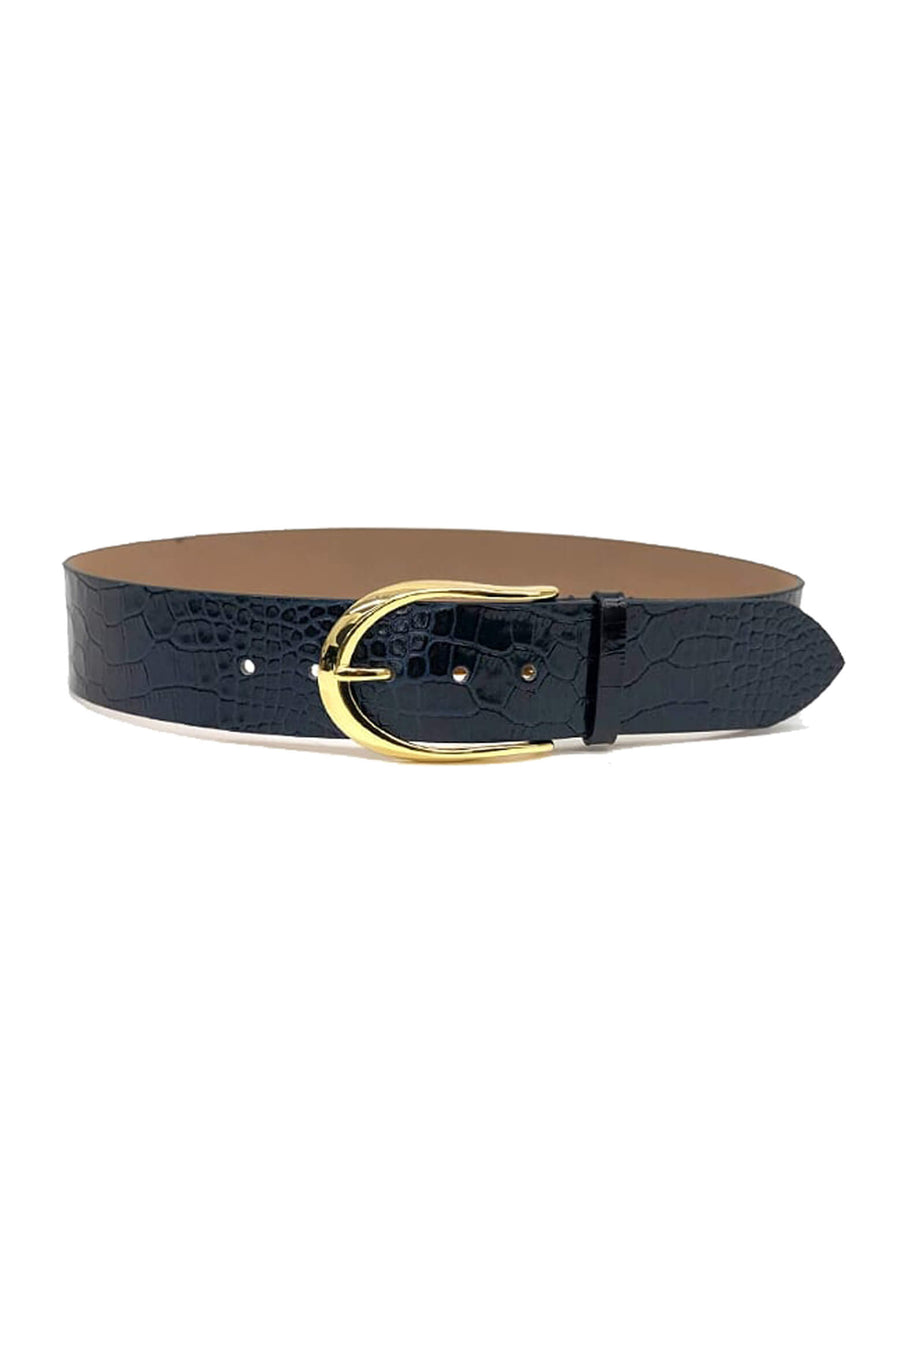 B-Low The Belt Erin Waist Croco Belt in Black from The New Trend